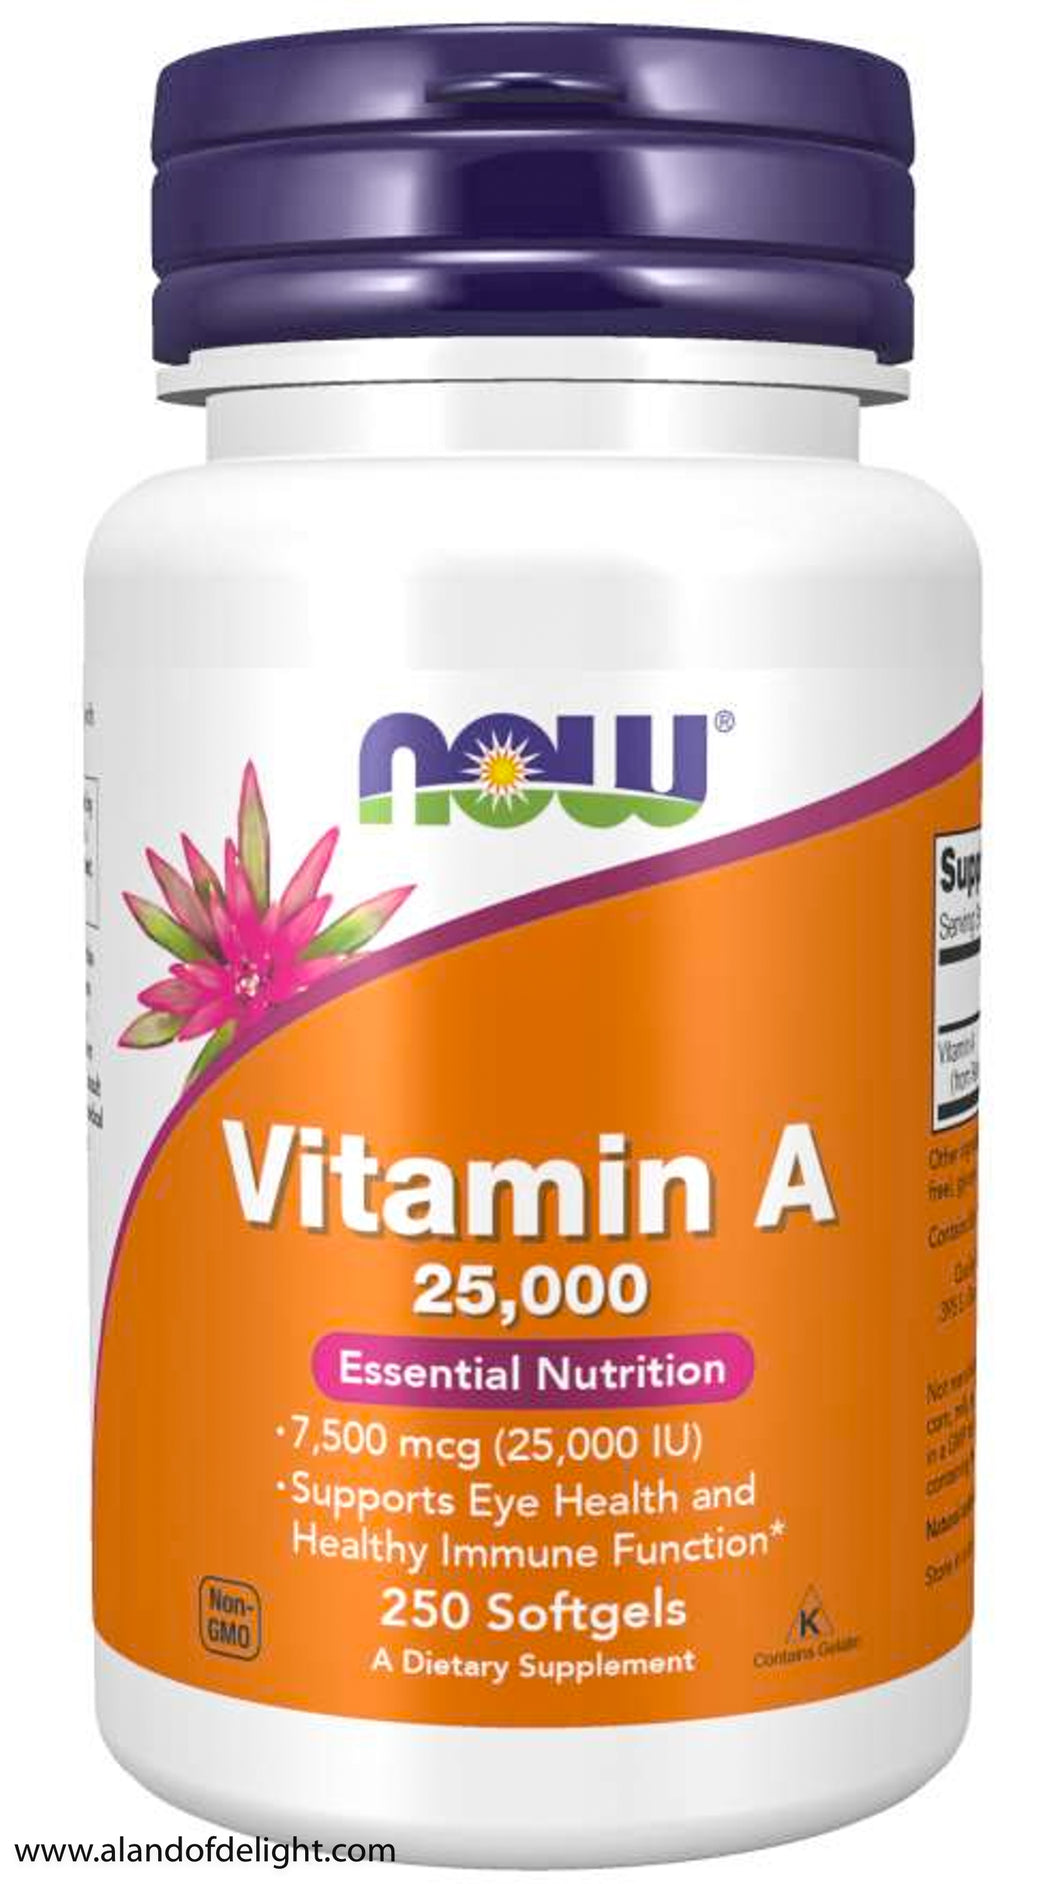 Vitamin A 25,000 - 250 Softgels